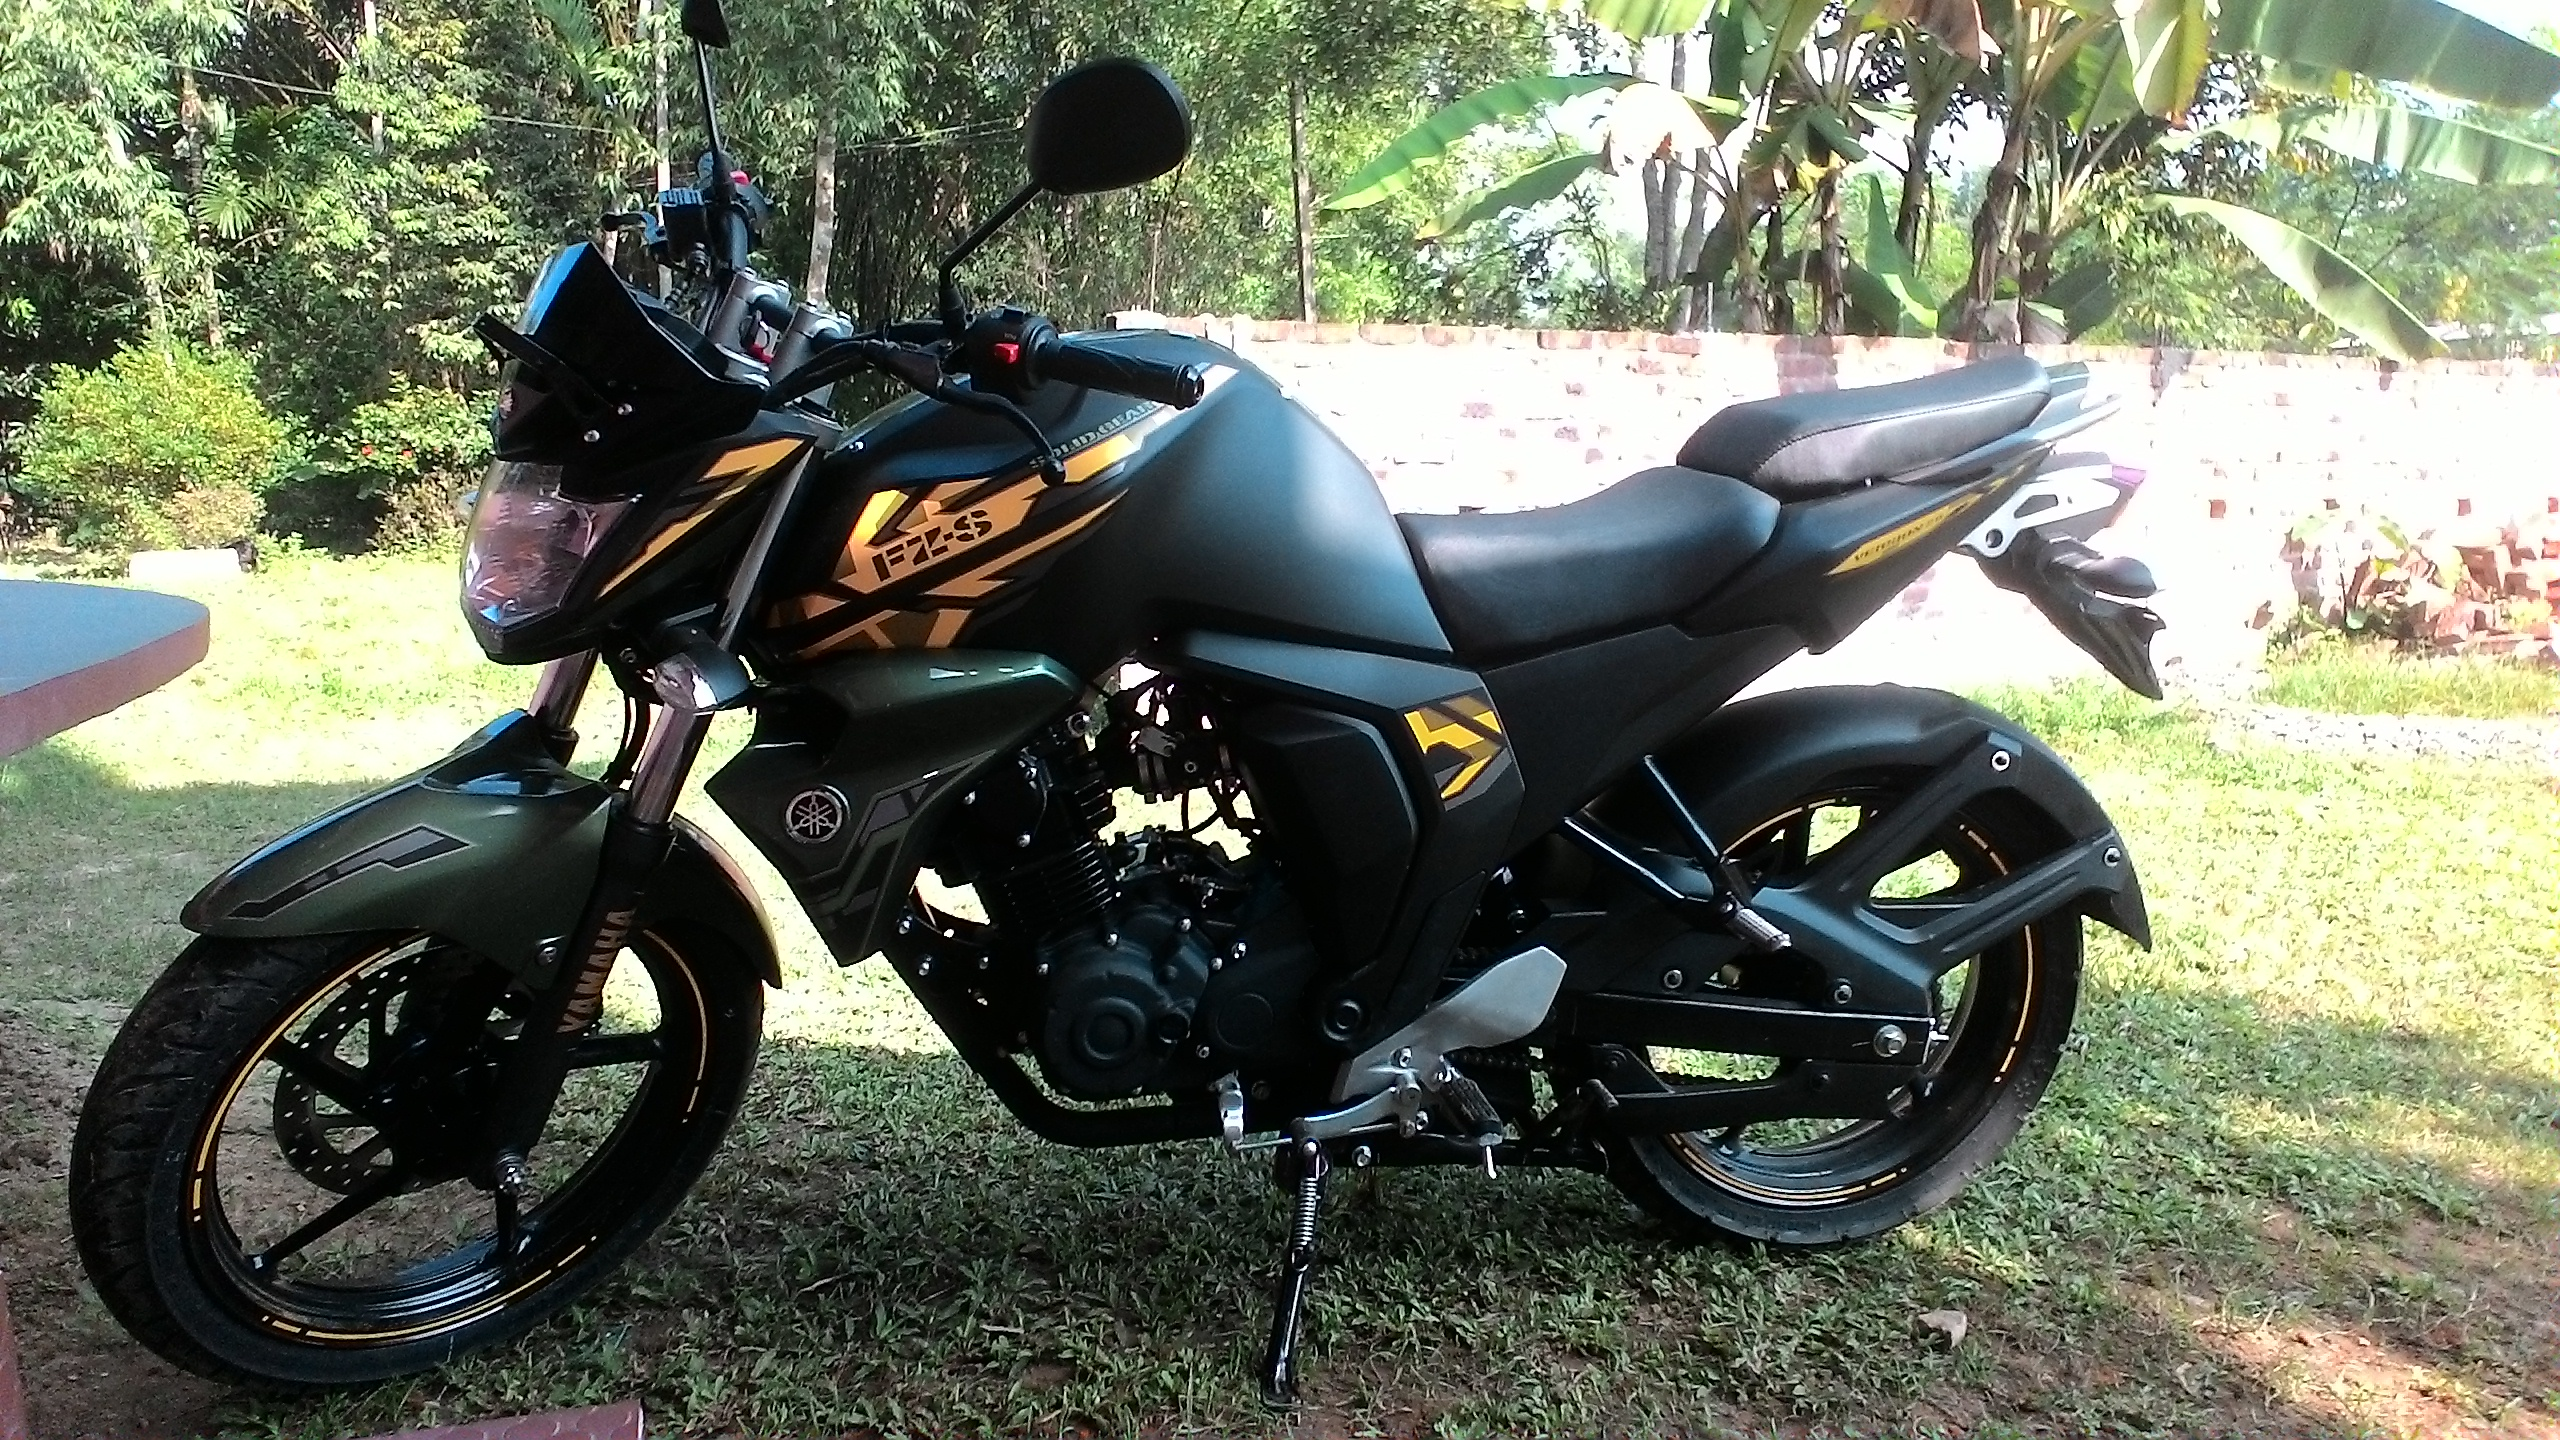 Yamaha Fz Fuel Consumption